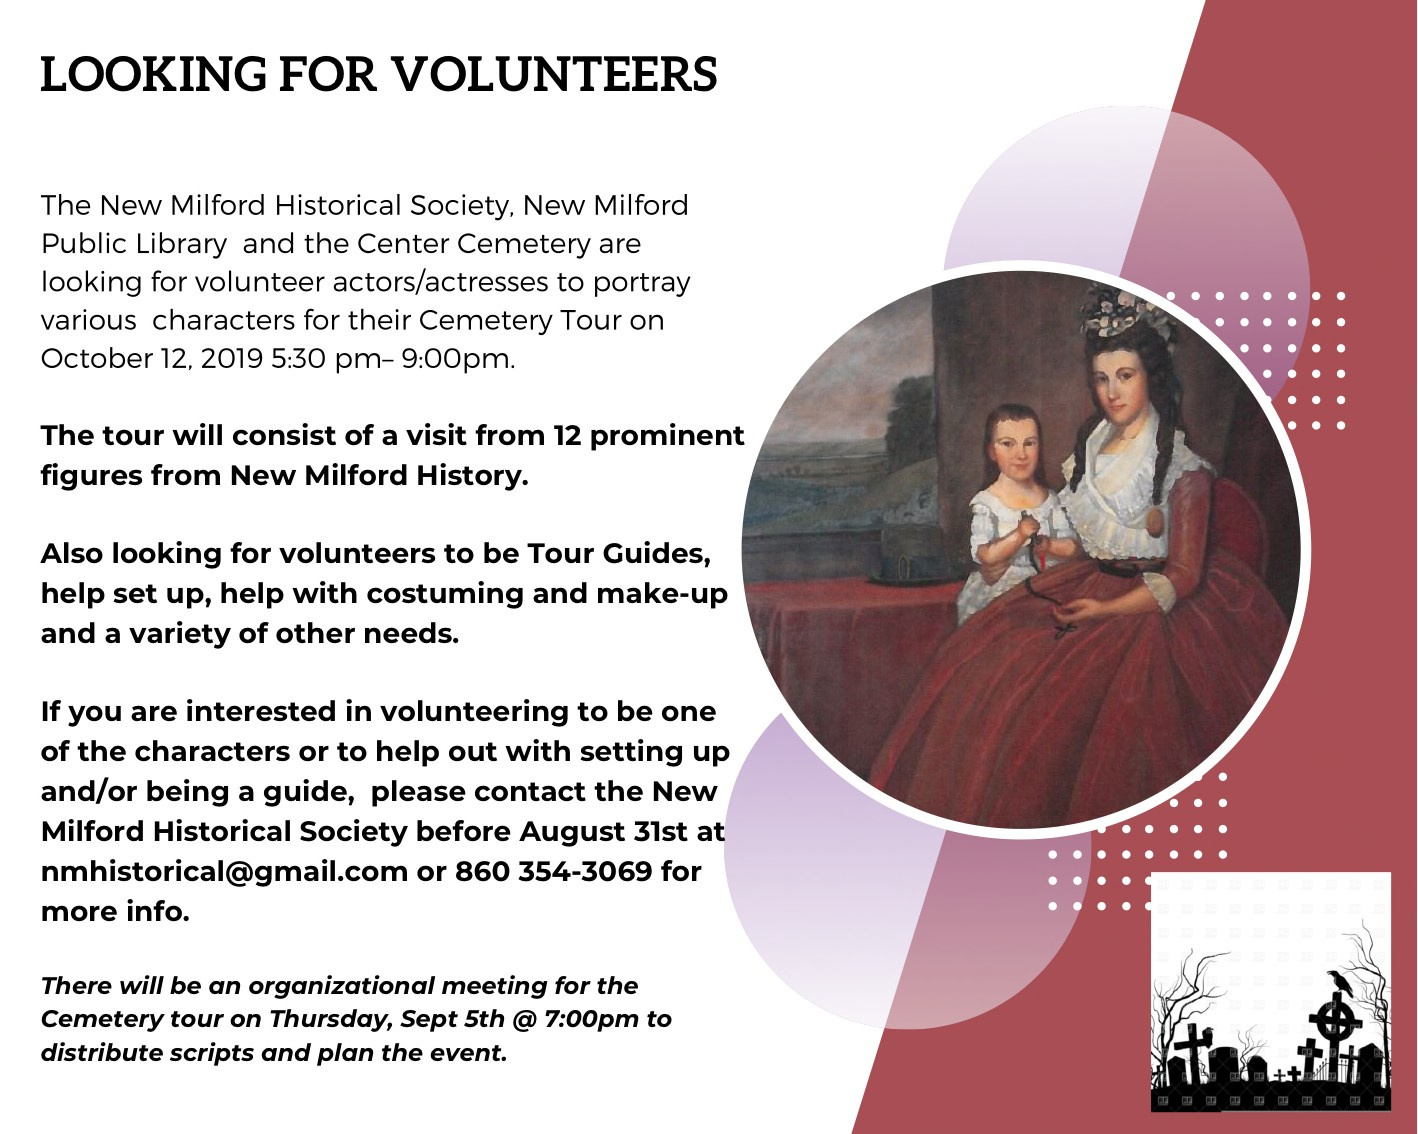 Volunteer actors/actresses Needed